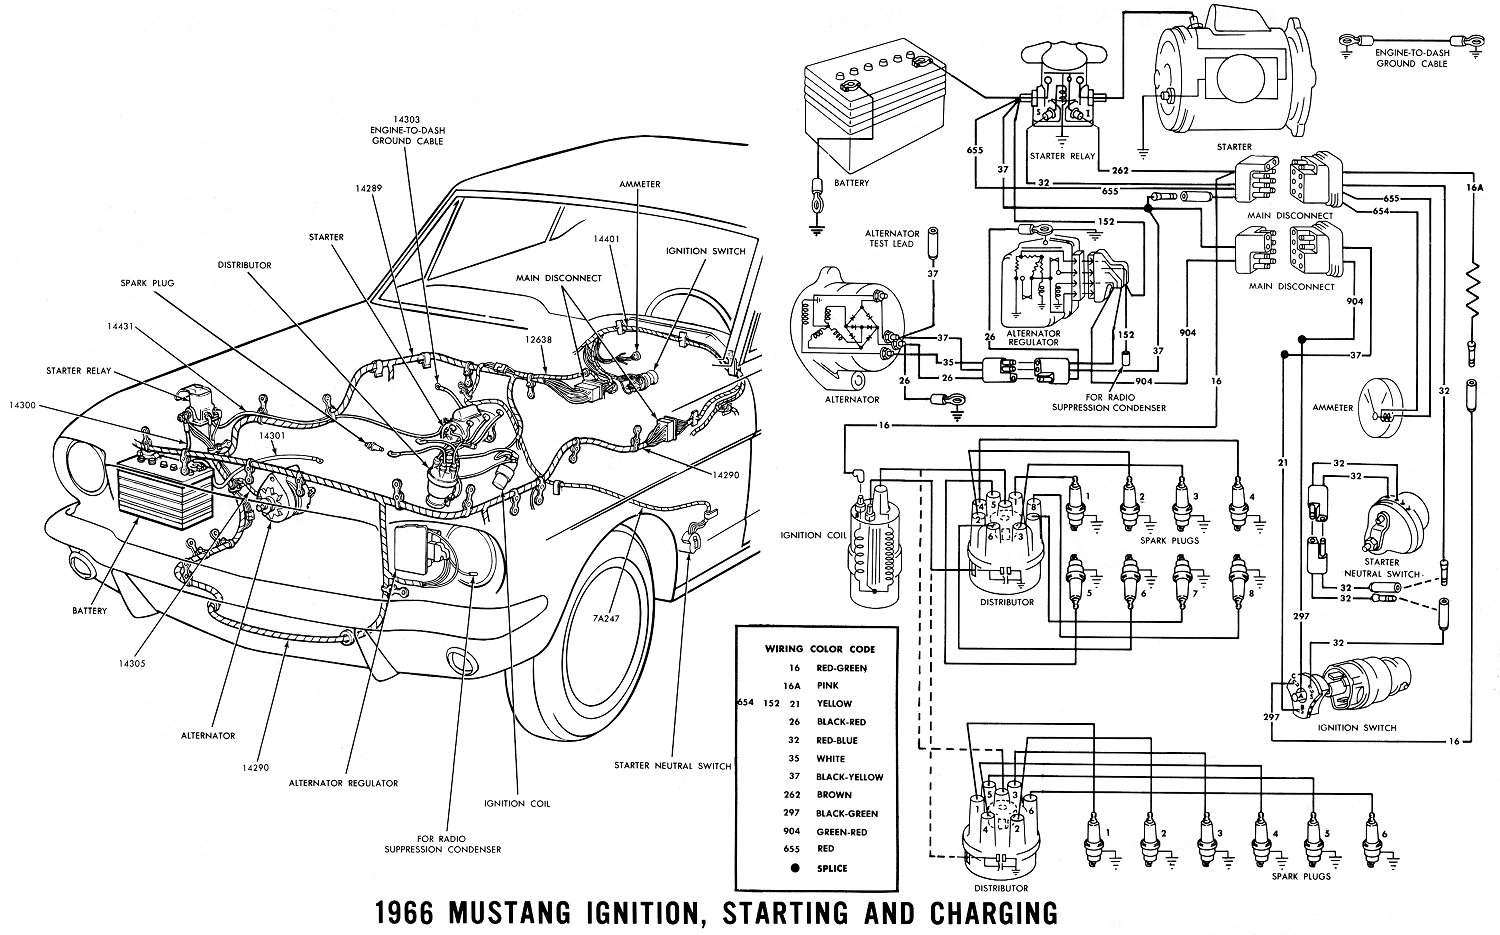 Ignition Switch Wiring Diagram For 1964 Chevy C10 Library 1966 Mustang Diagrams Average Joe Restoration Rh Averagejoerestoration Com 67